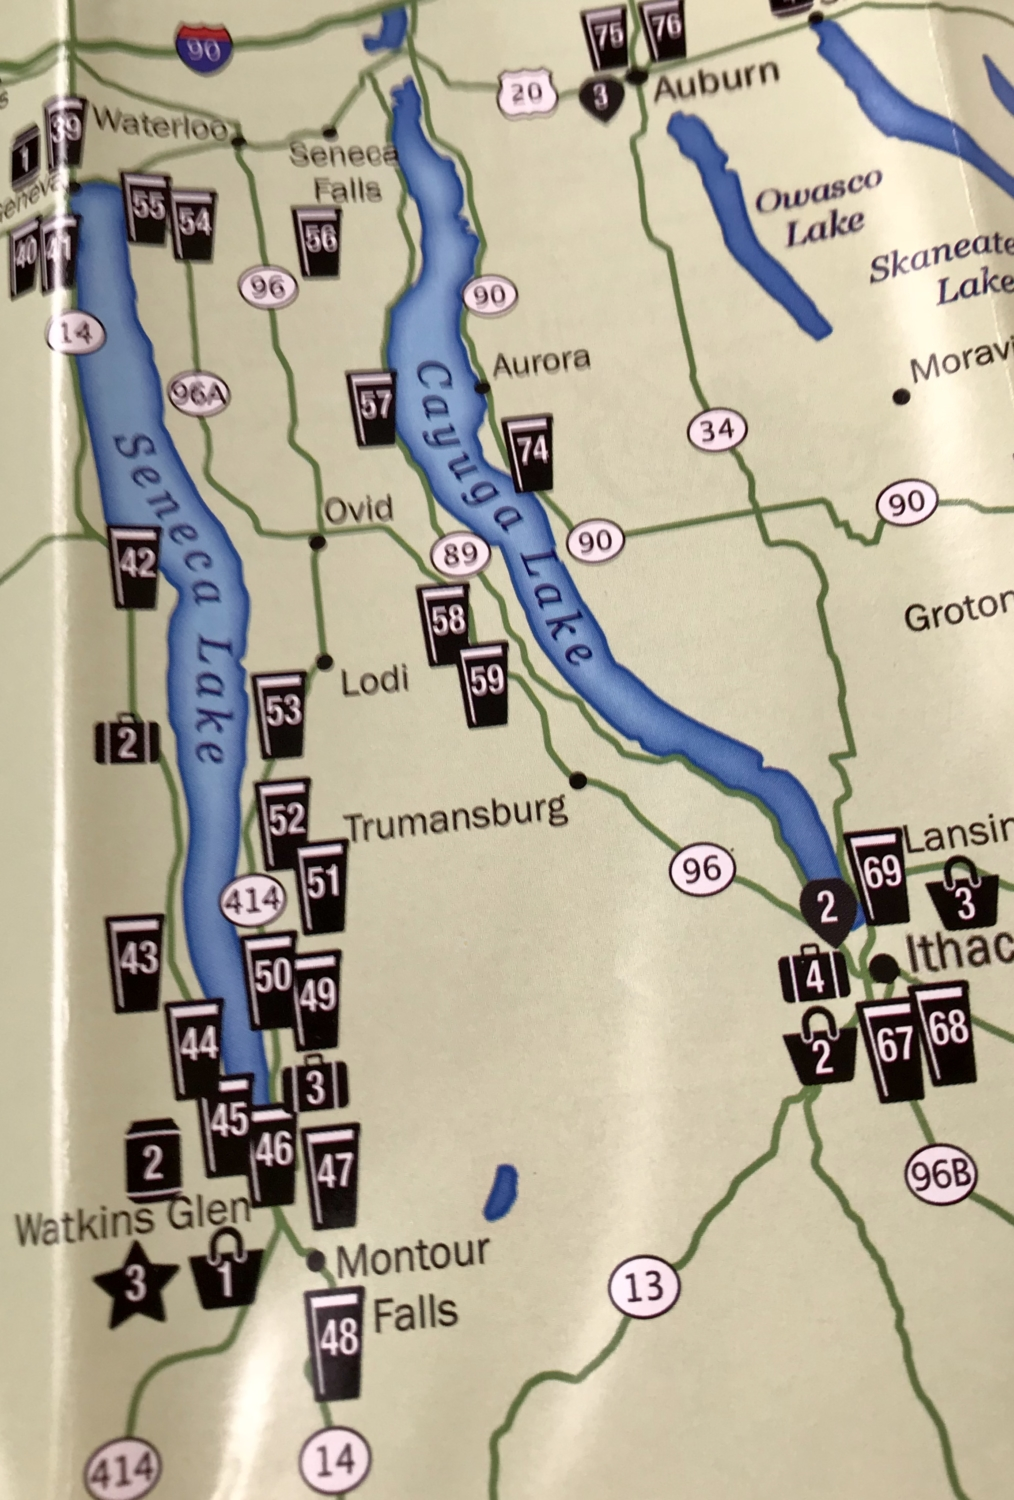 Tillinghast Manor - Map of Wineries